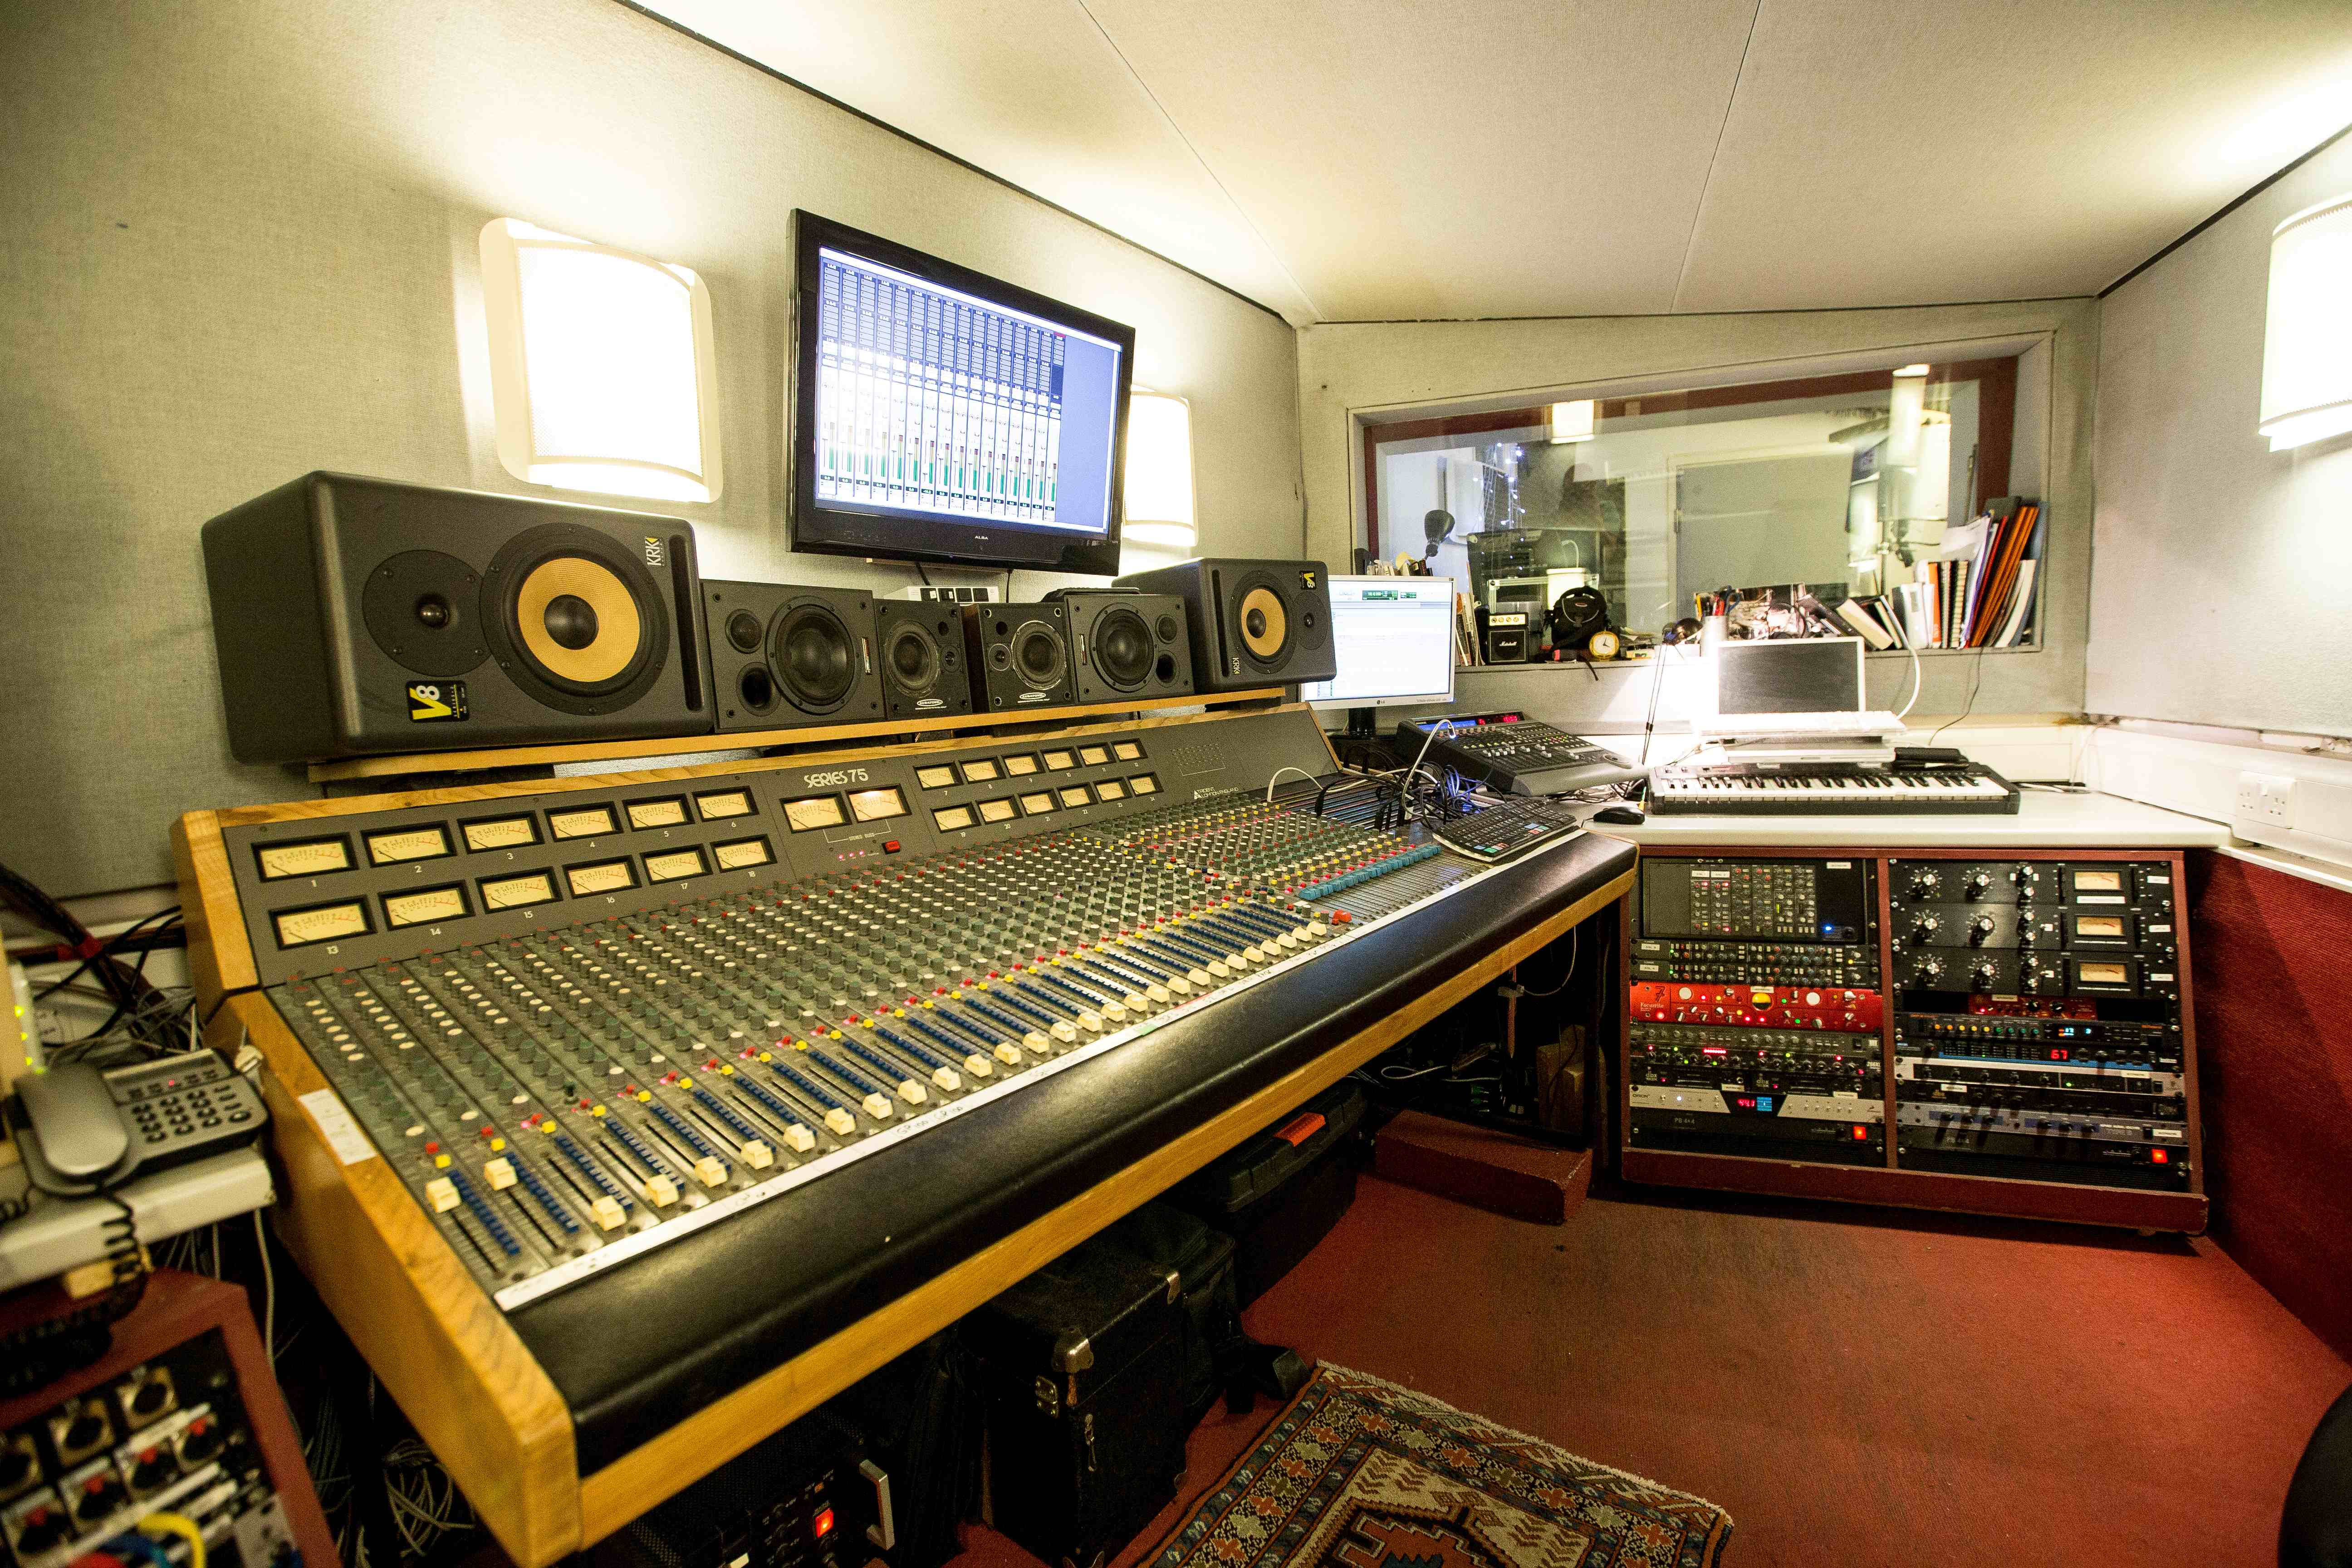 New_control_room_arclite_productions_trident_series_75